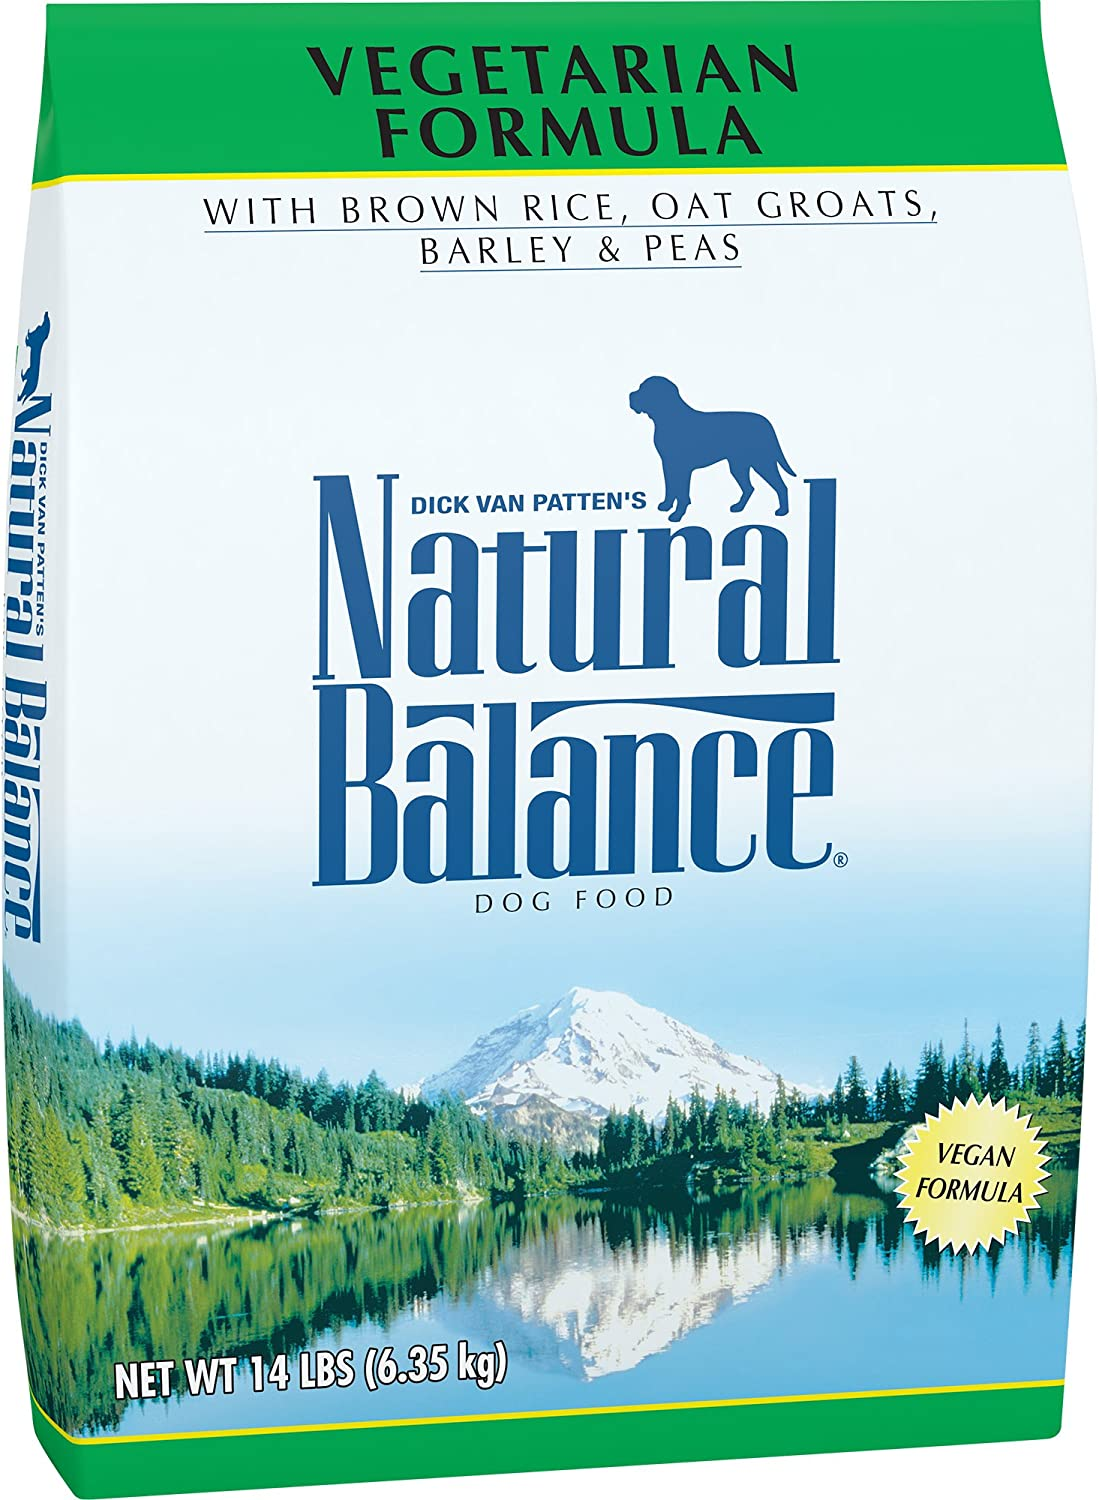 Natural Balance Vegetarian Dry Dog Food, Brown Rice, Oat Groats, Barley Peas, Vegan